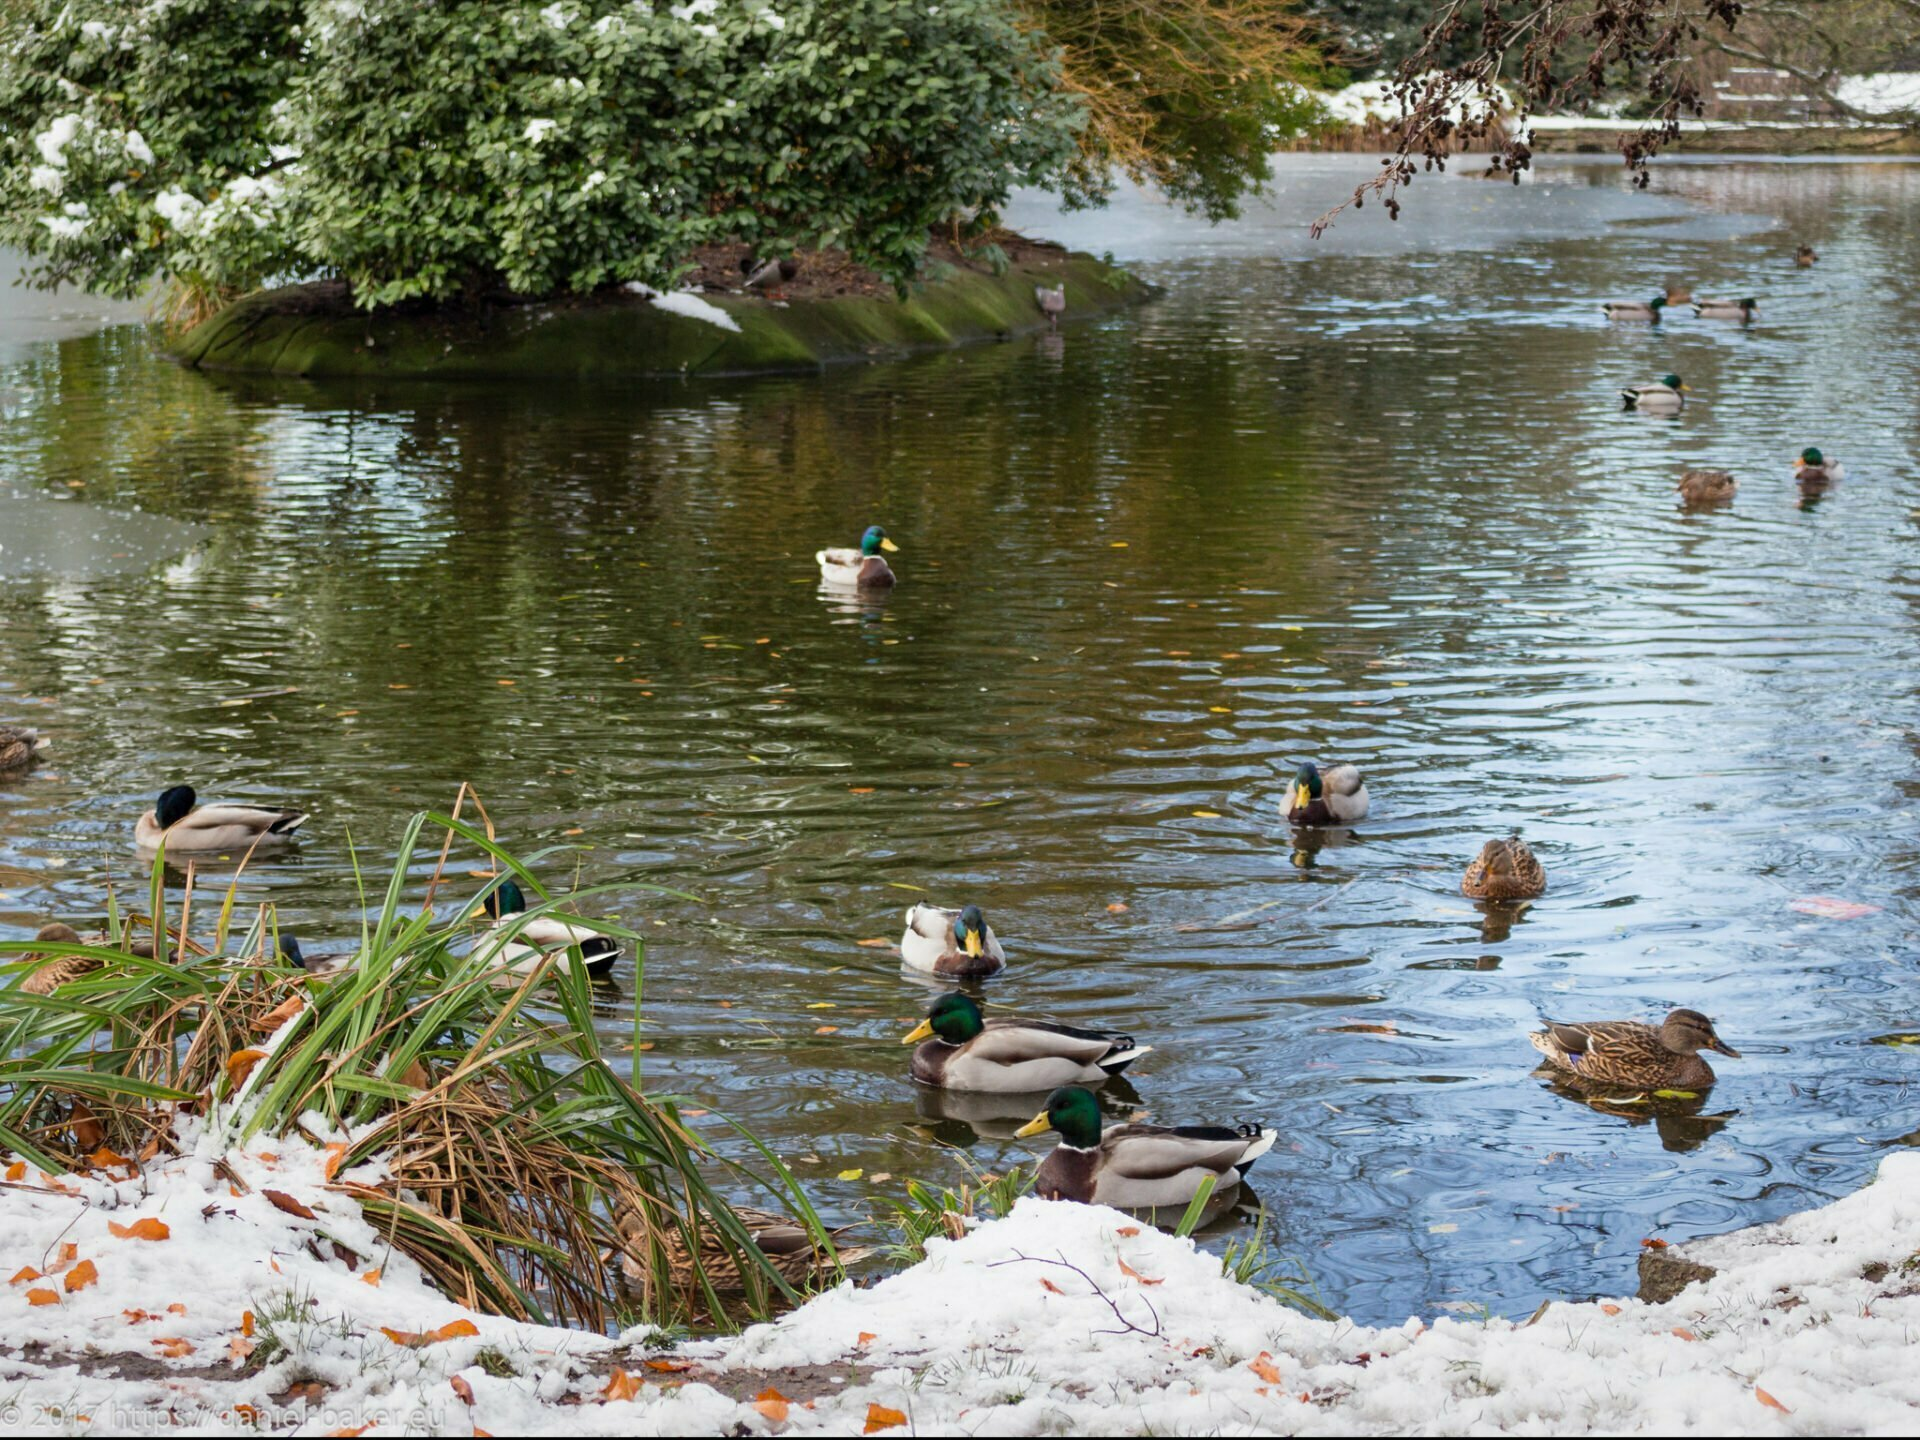 A pond with ducks surrounded by snow